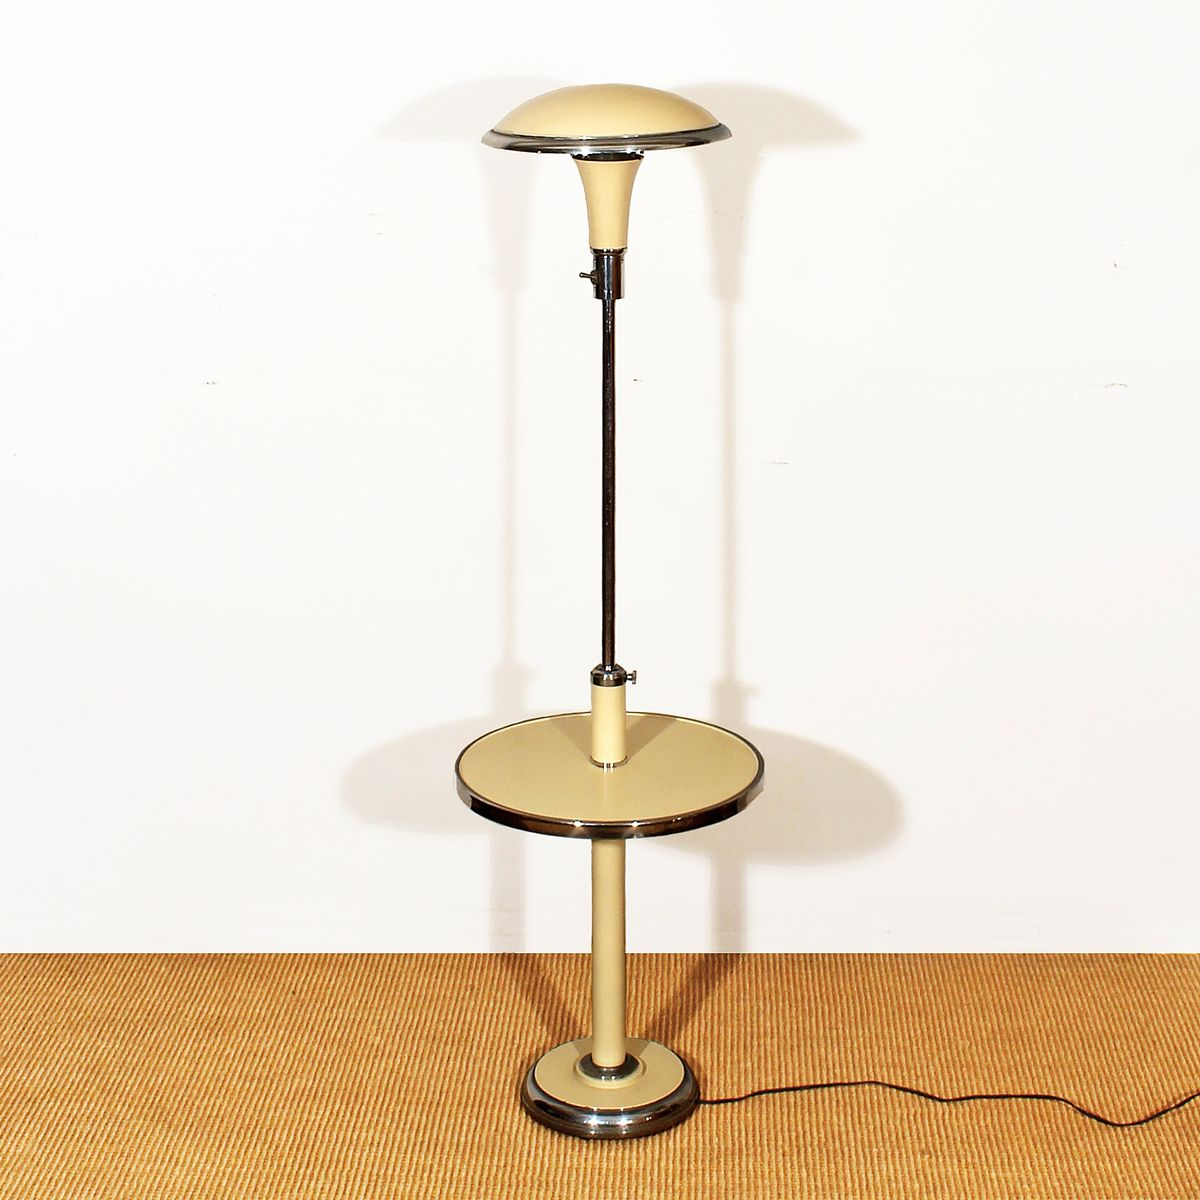 Art deco floor reading lamp 1930s for sale at pamono for Miroir art deco 1930